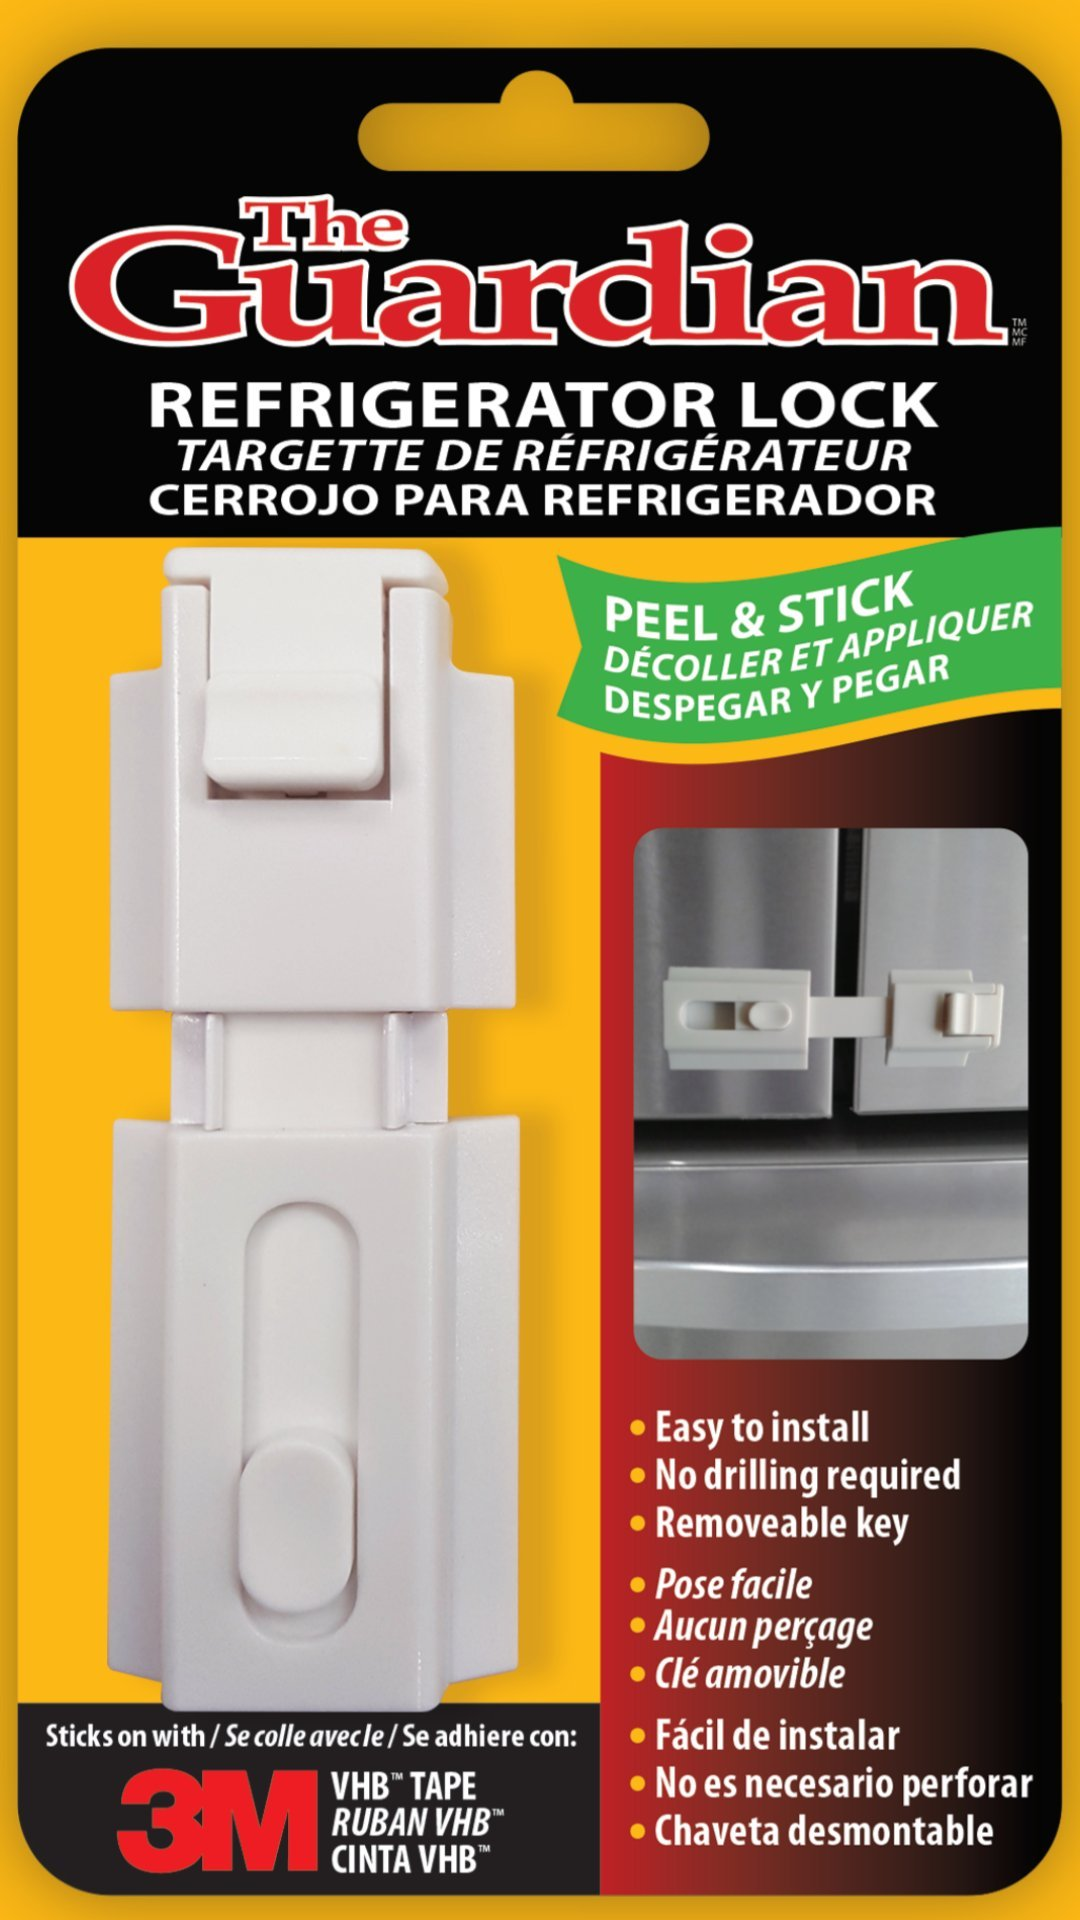 The Guardian Refrigerator Lock for any Home Appliance, used for Infants, Special Needs Children and Dementia Patients (White) by Door Guardian (Image #3)